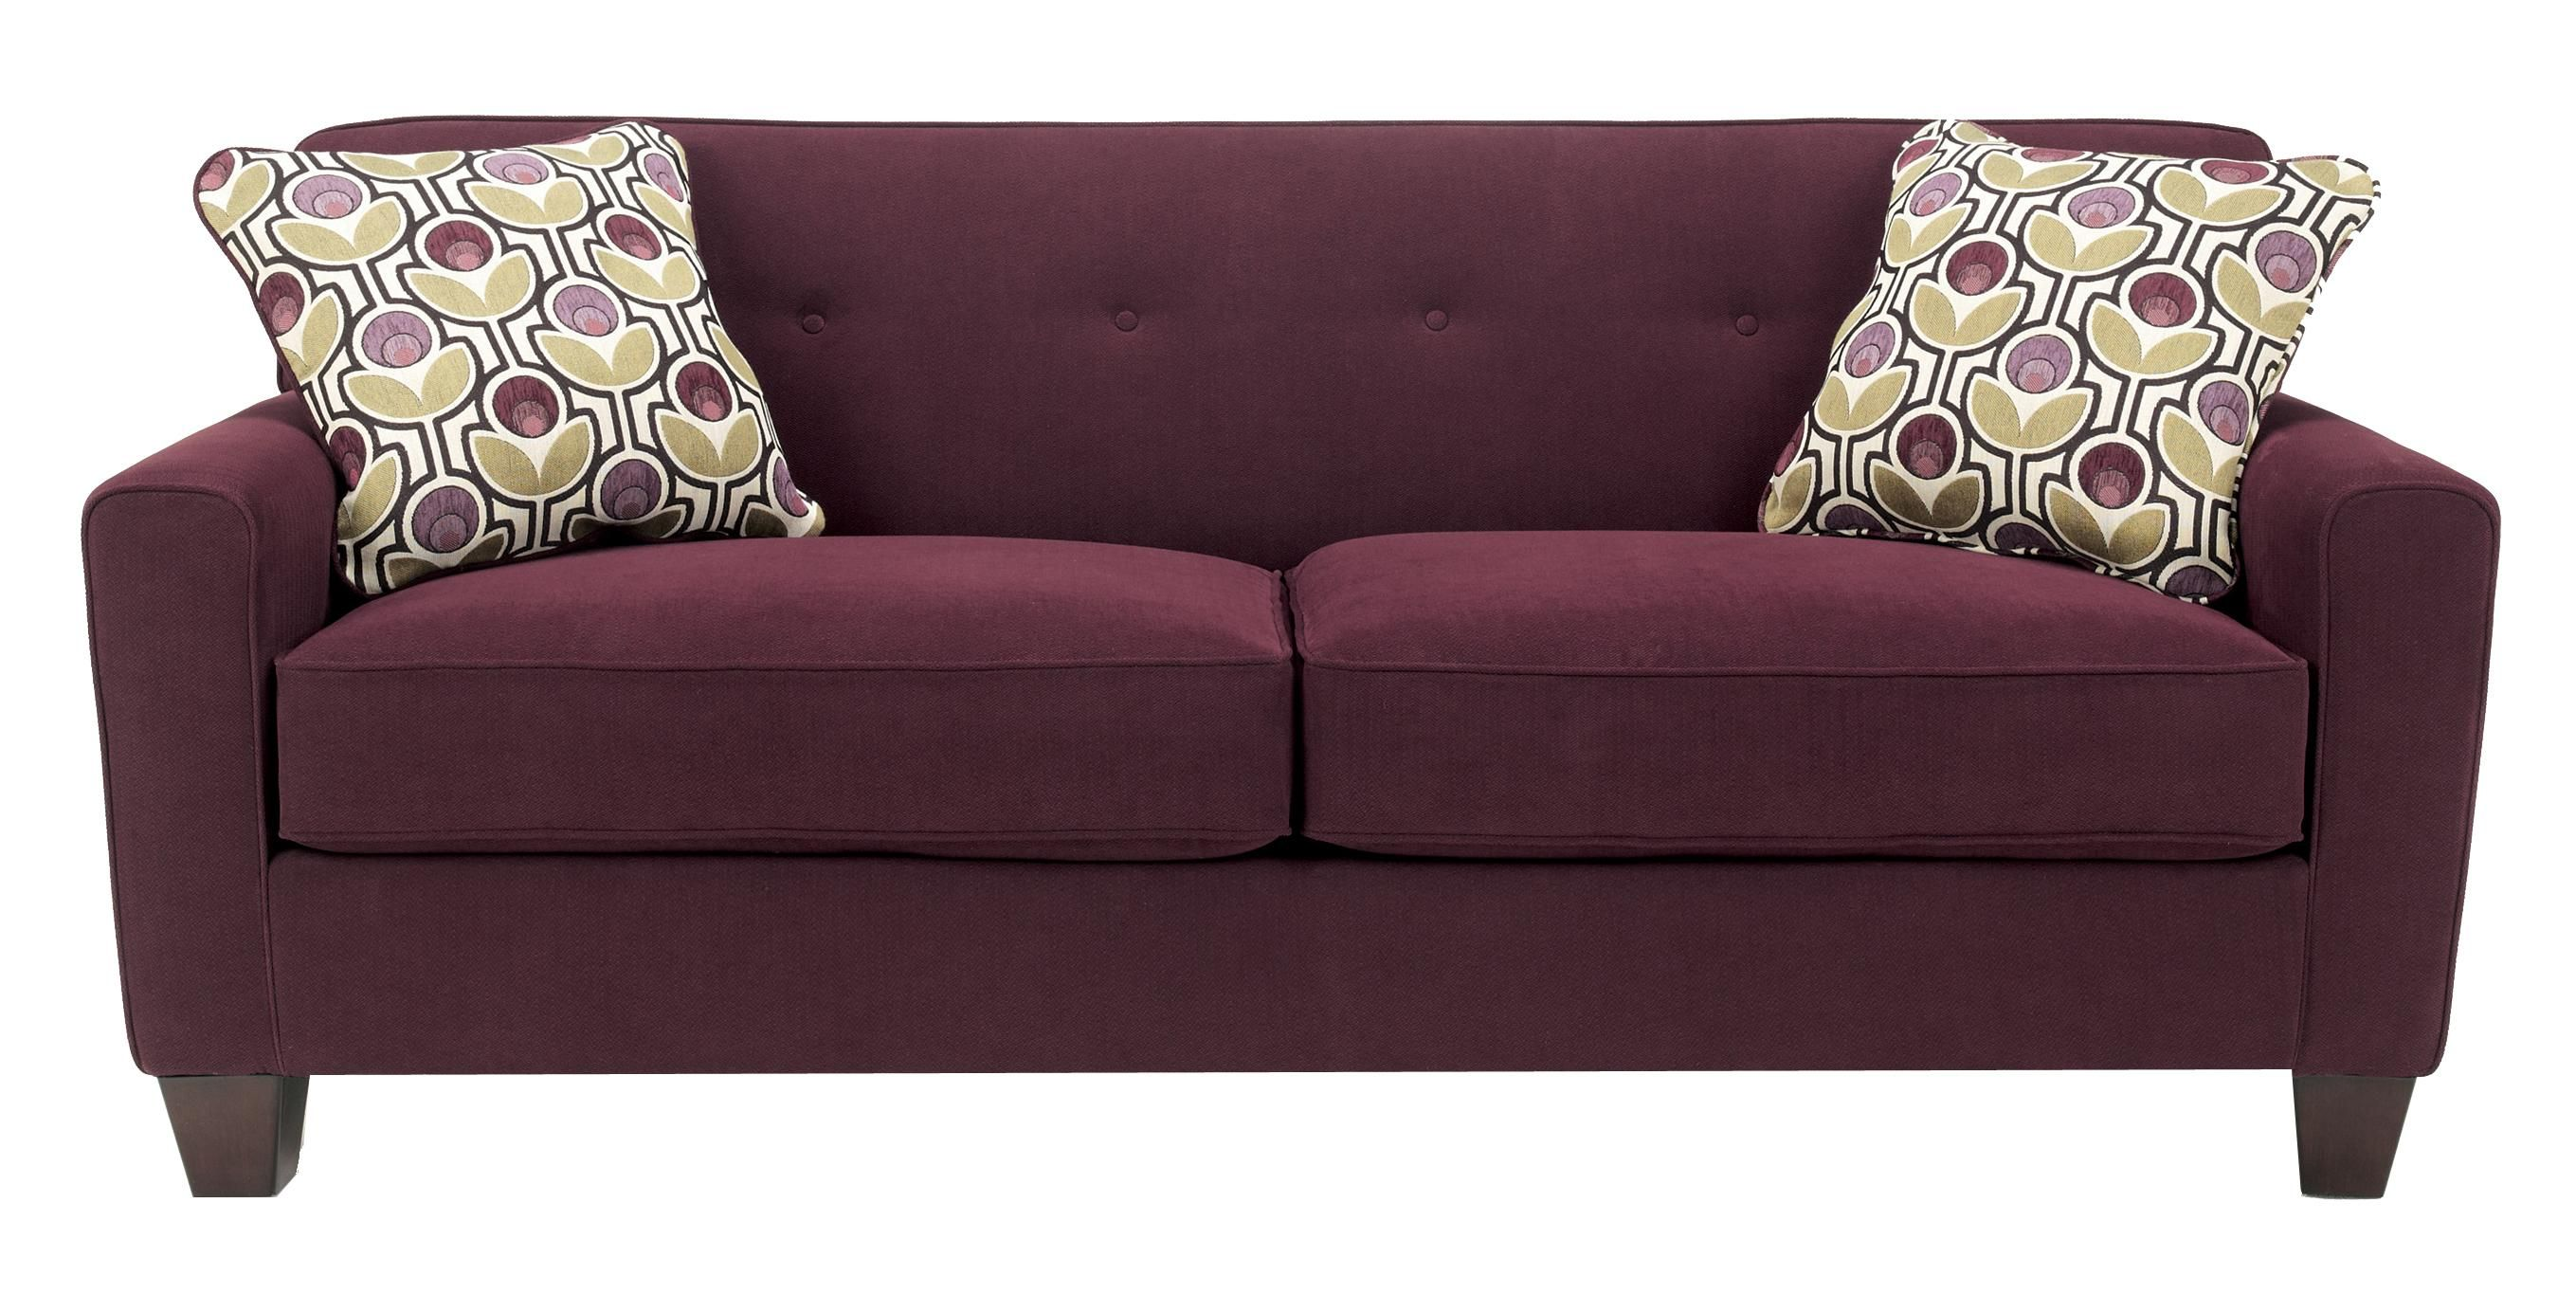 Danielle Eggplant Contemporary Stationary Sofa With Wood Feet By